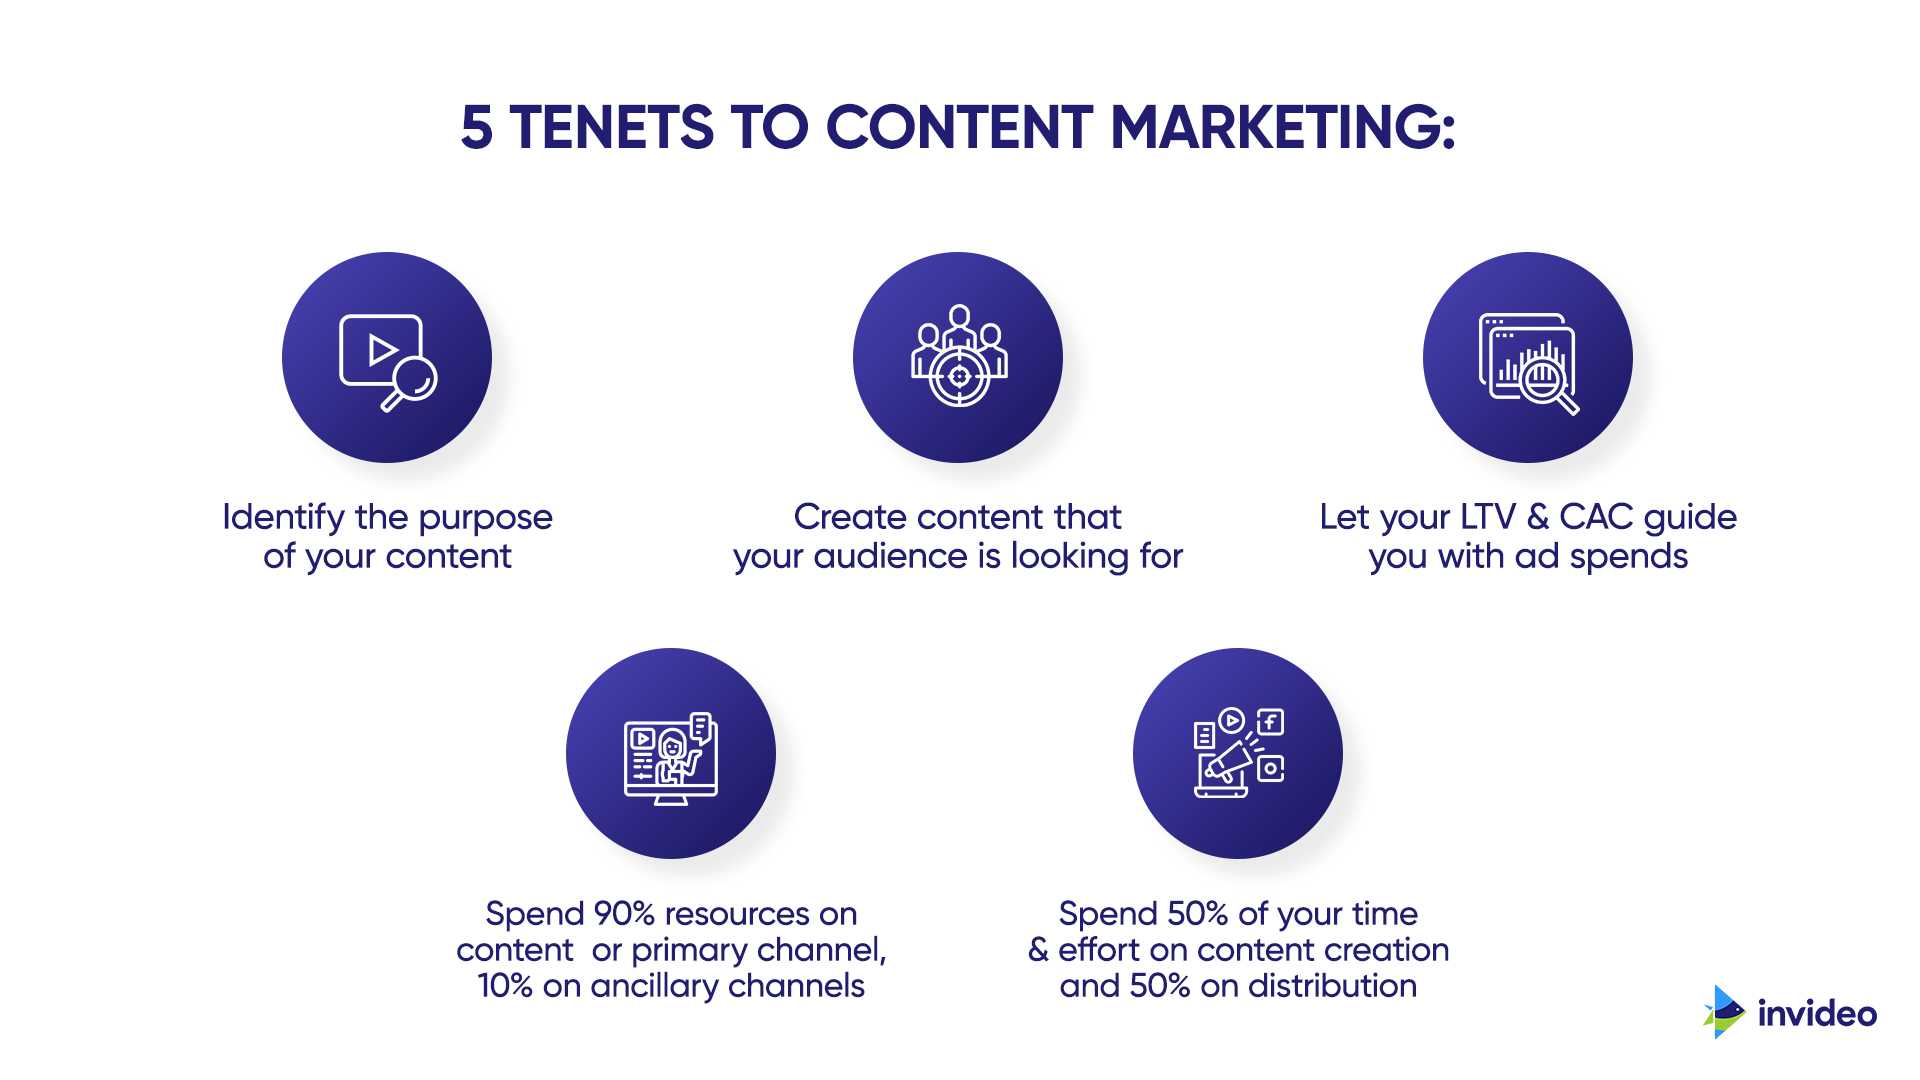 5 Tenets To Content Marketing